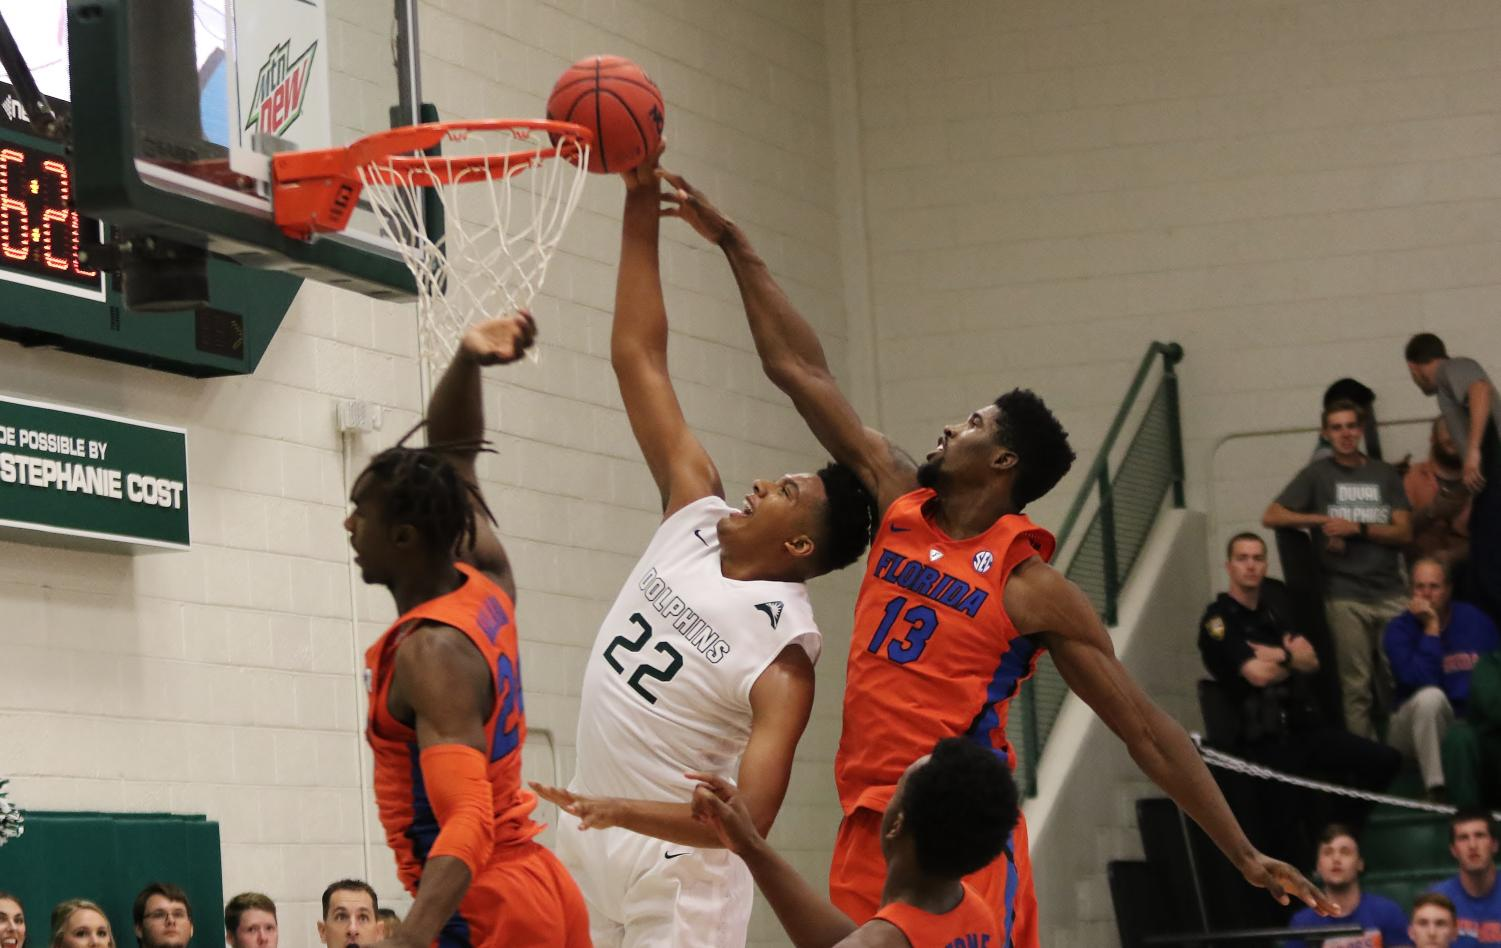 JU basketball player number 22, Radian Bakkali, going up to dunk the back during their recent game against the University of Florida.